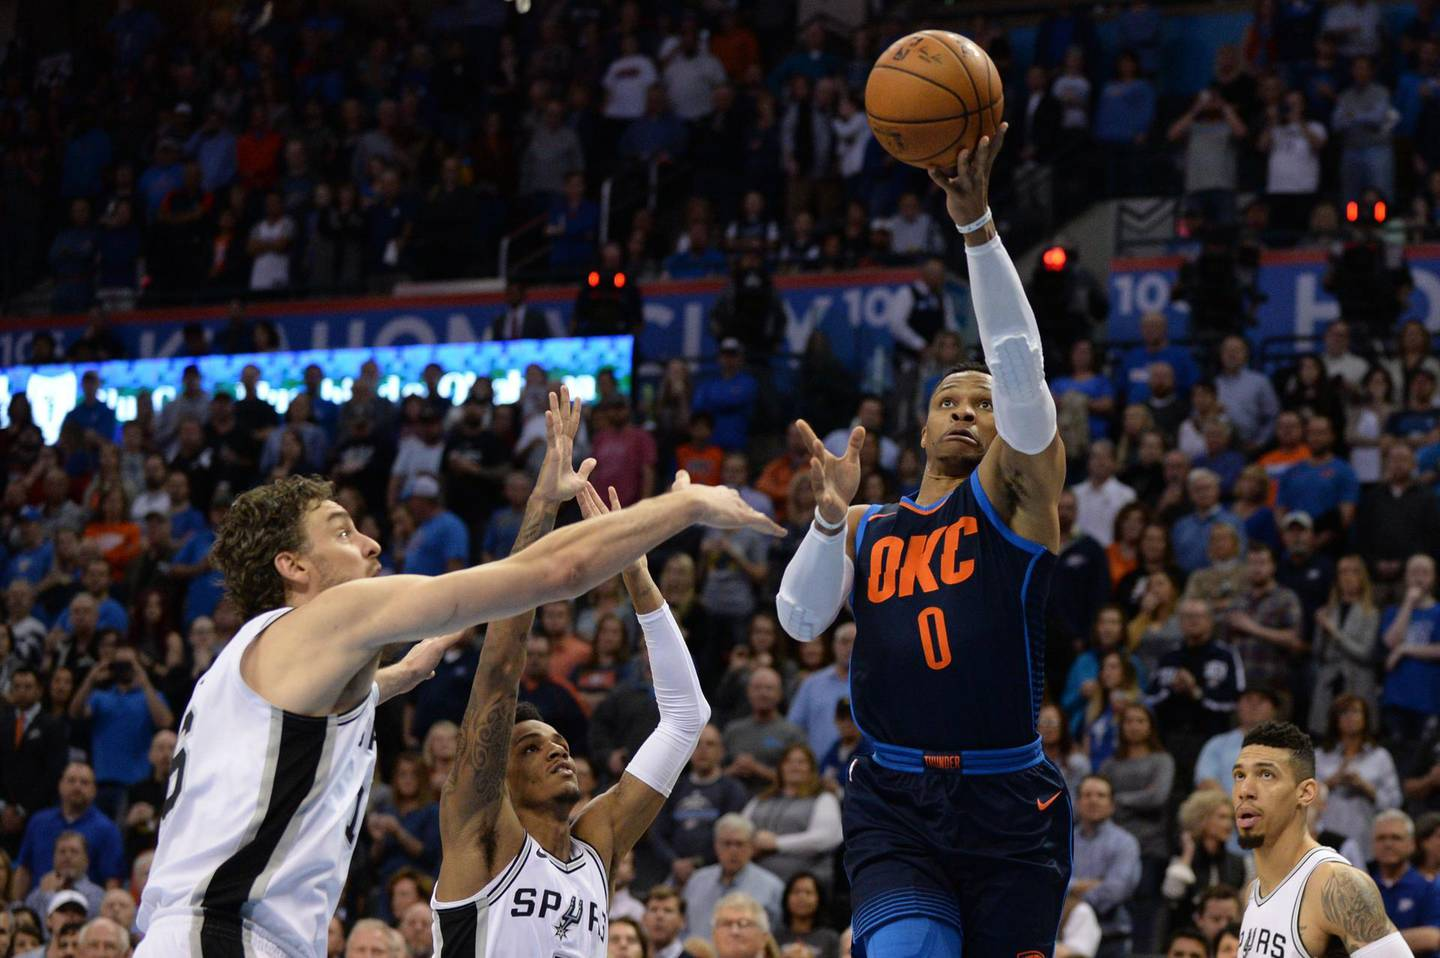 Dec 3, 2017; Oklahoma City, OK, USA; Oklahoma City Thunder guard Russell Westbrook (0) drives to the basket in front of San Antonio Spurs center Pau Gasol (16) and guard Dejounte Murray (5) during the first quarter at Chesapeake Energy Arena. Mandatory Credit: Mark D. Smith-USA TODAY Sports